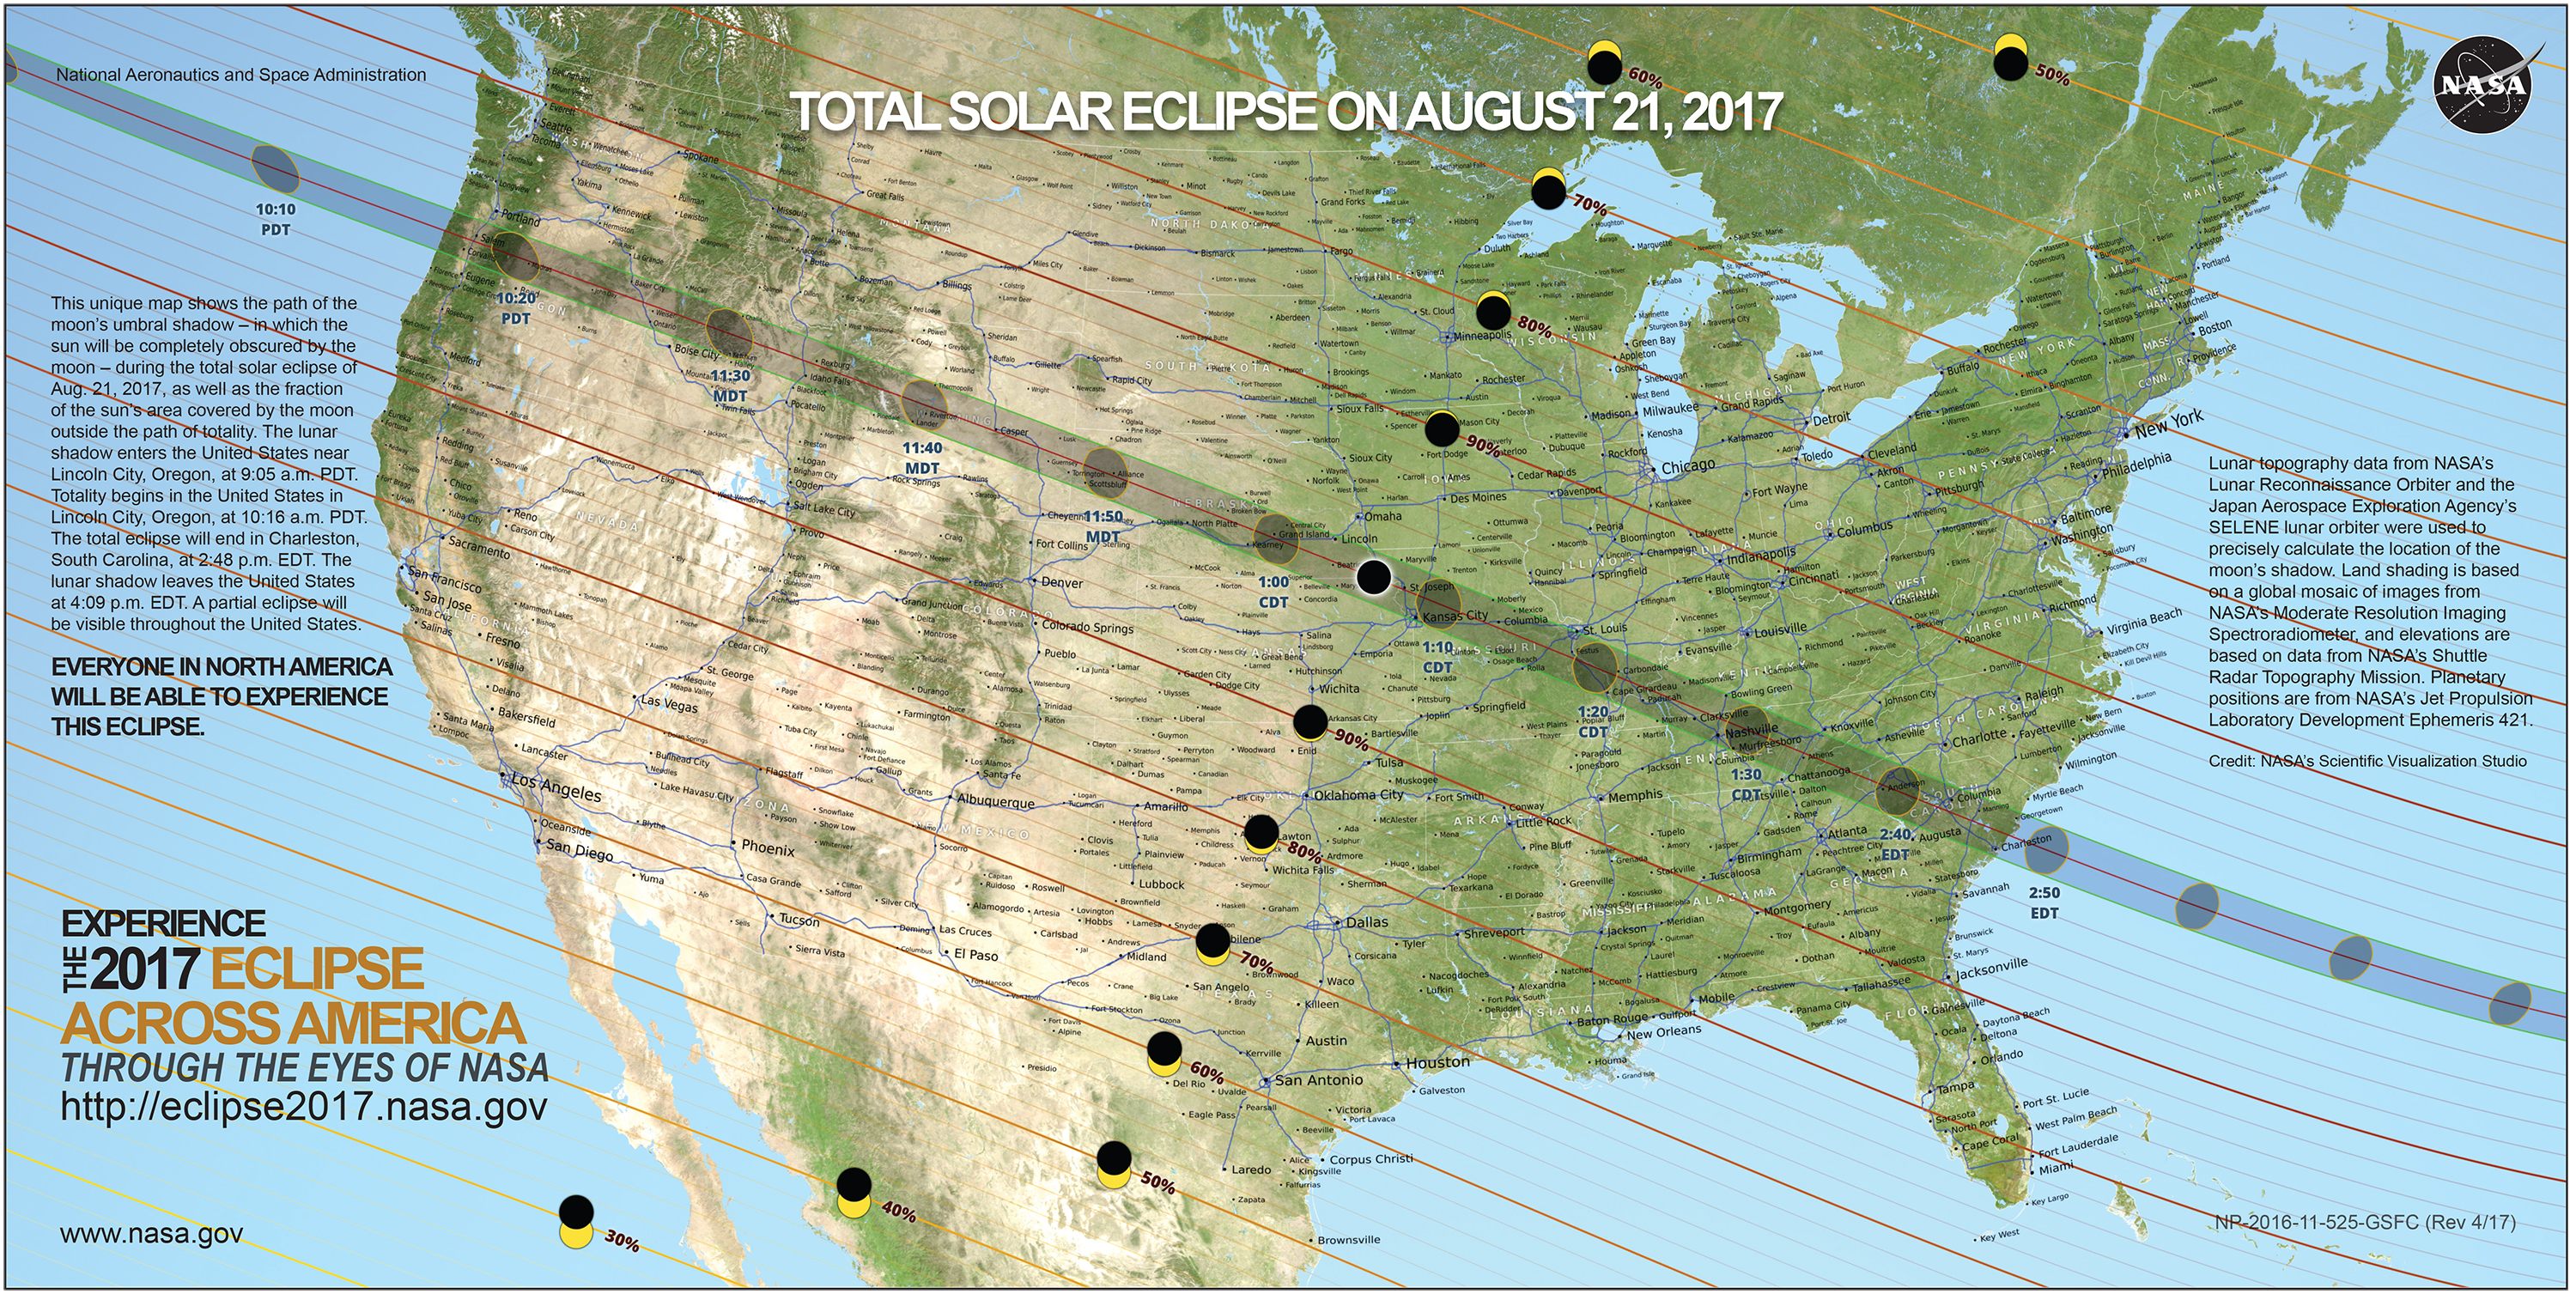 nasa eclipse map - August 21st Solar Eclipse: Remember to look up!